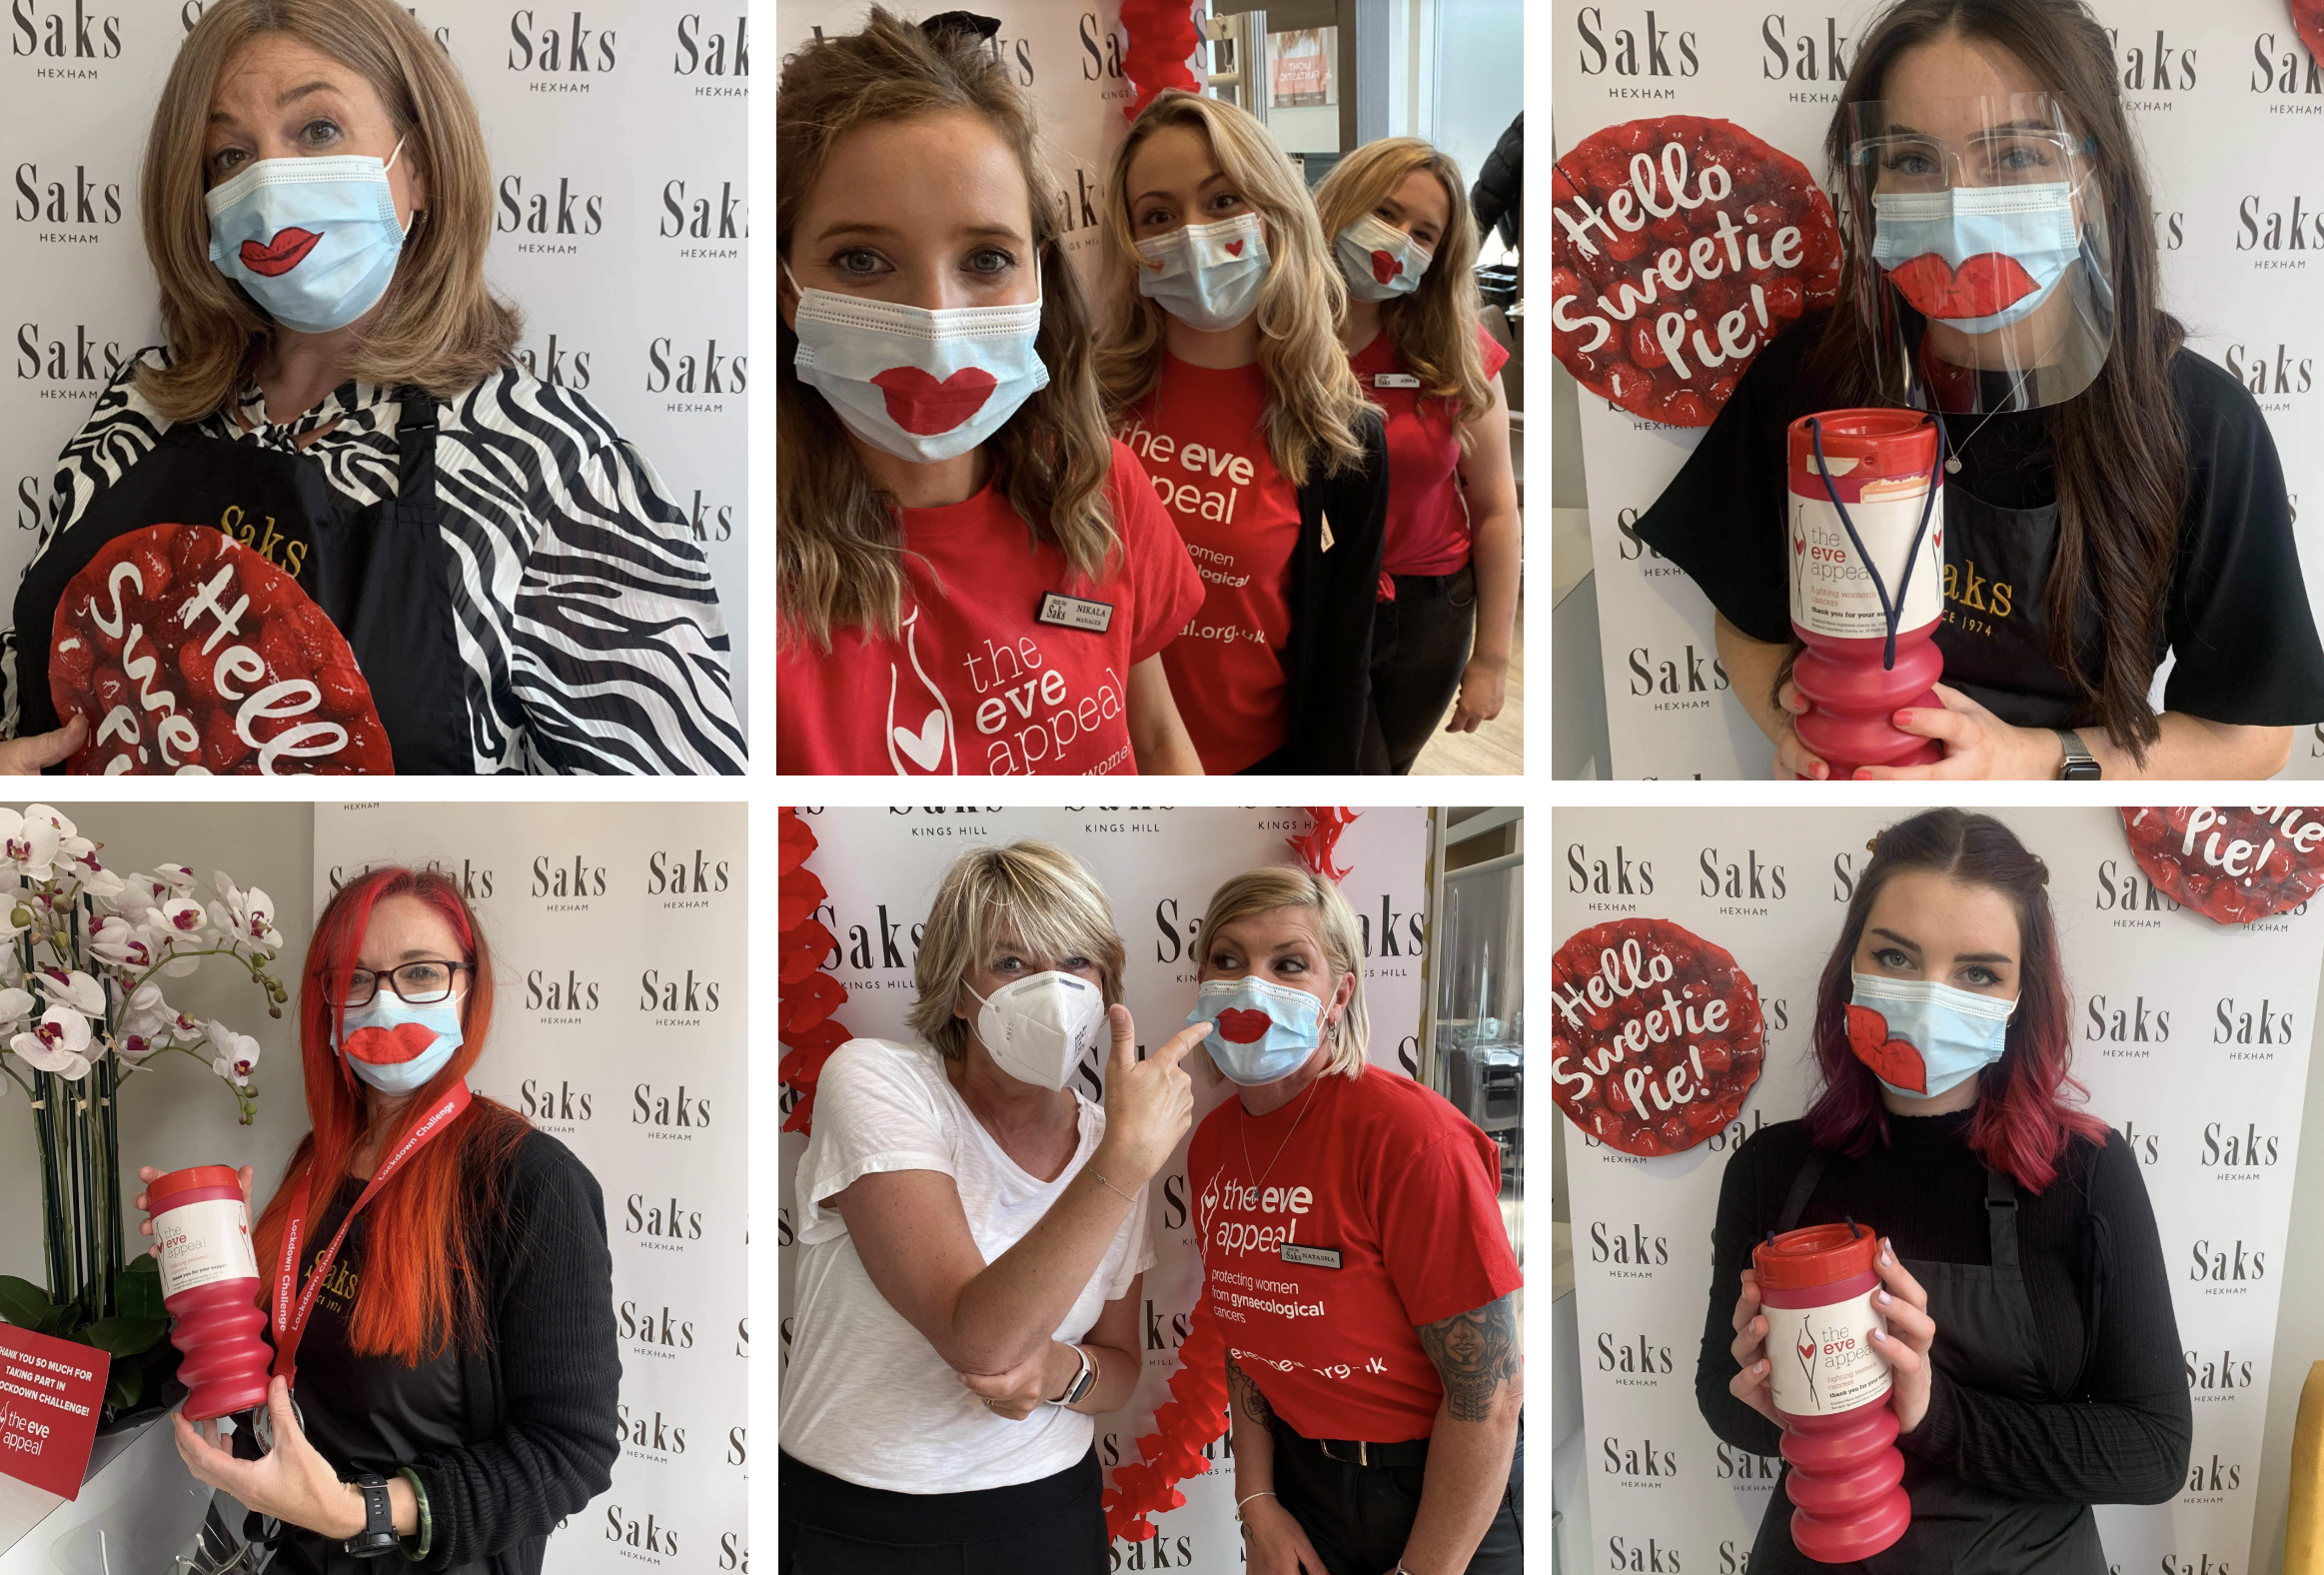 Saks4Eve fundraising - Get Lippy for The Eve Appeal at Saks